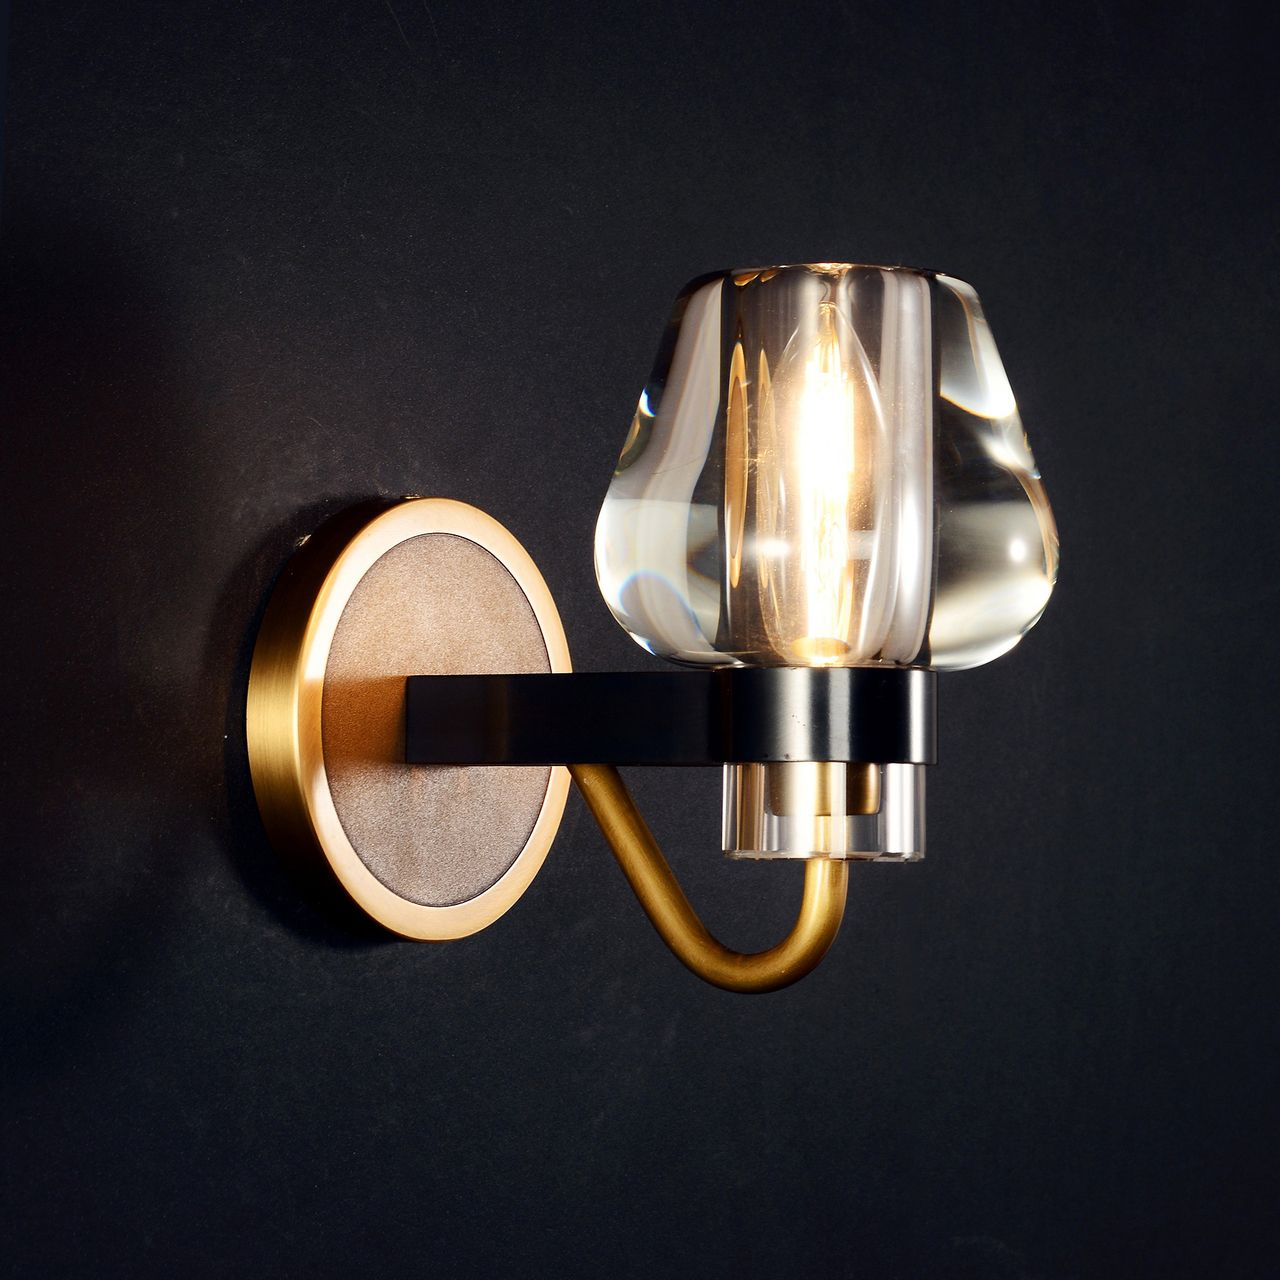 Mancini Sconce Brass Sconces Crystal Wall Sconces Crystal Wall Lighting